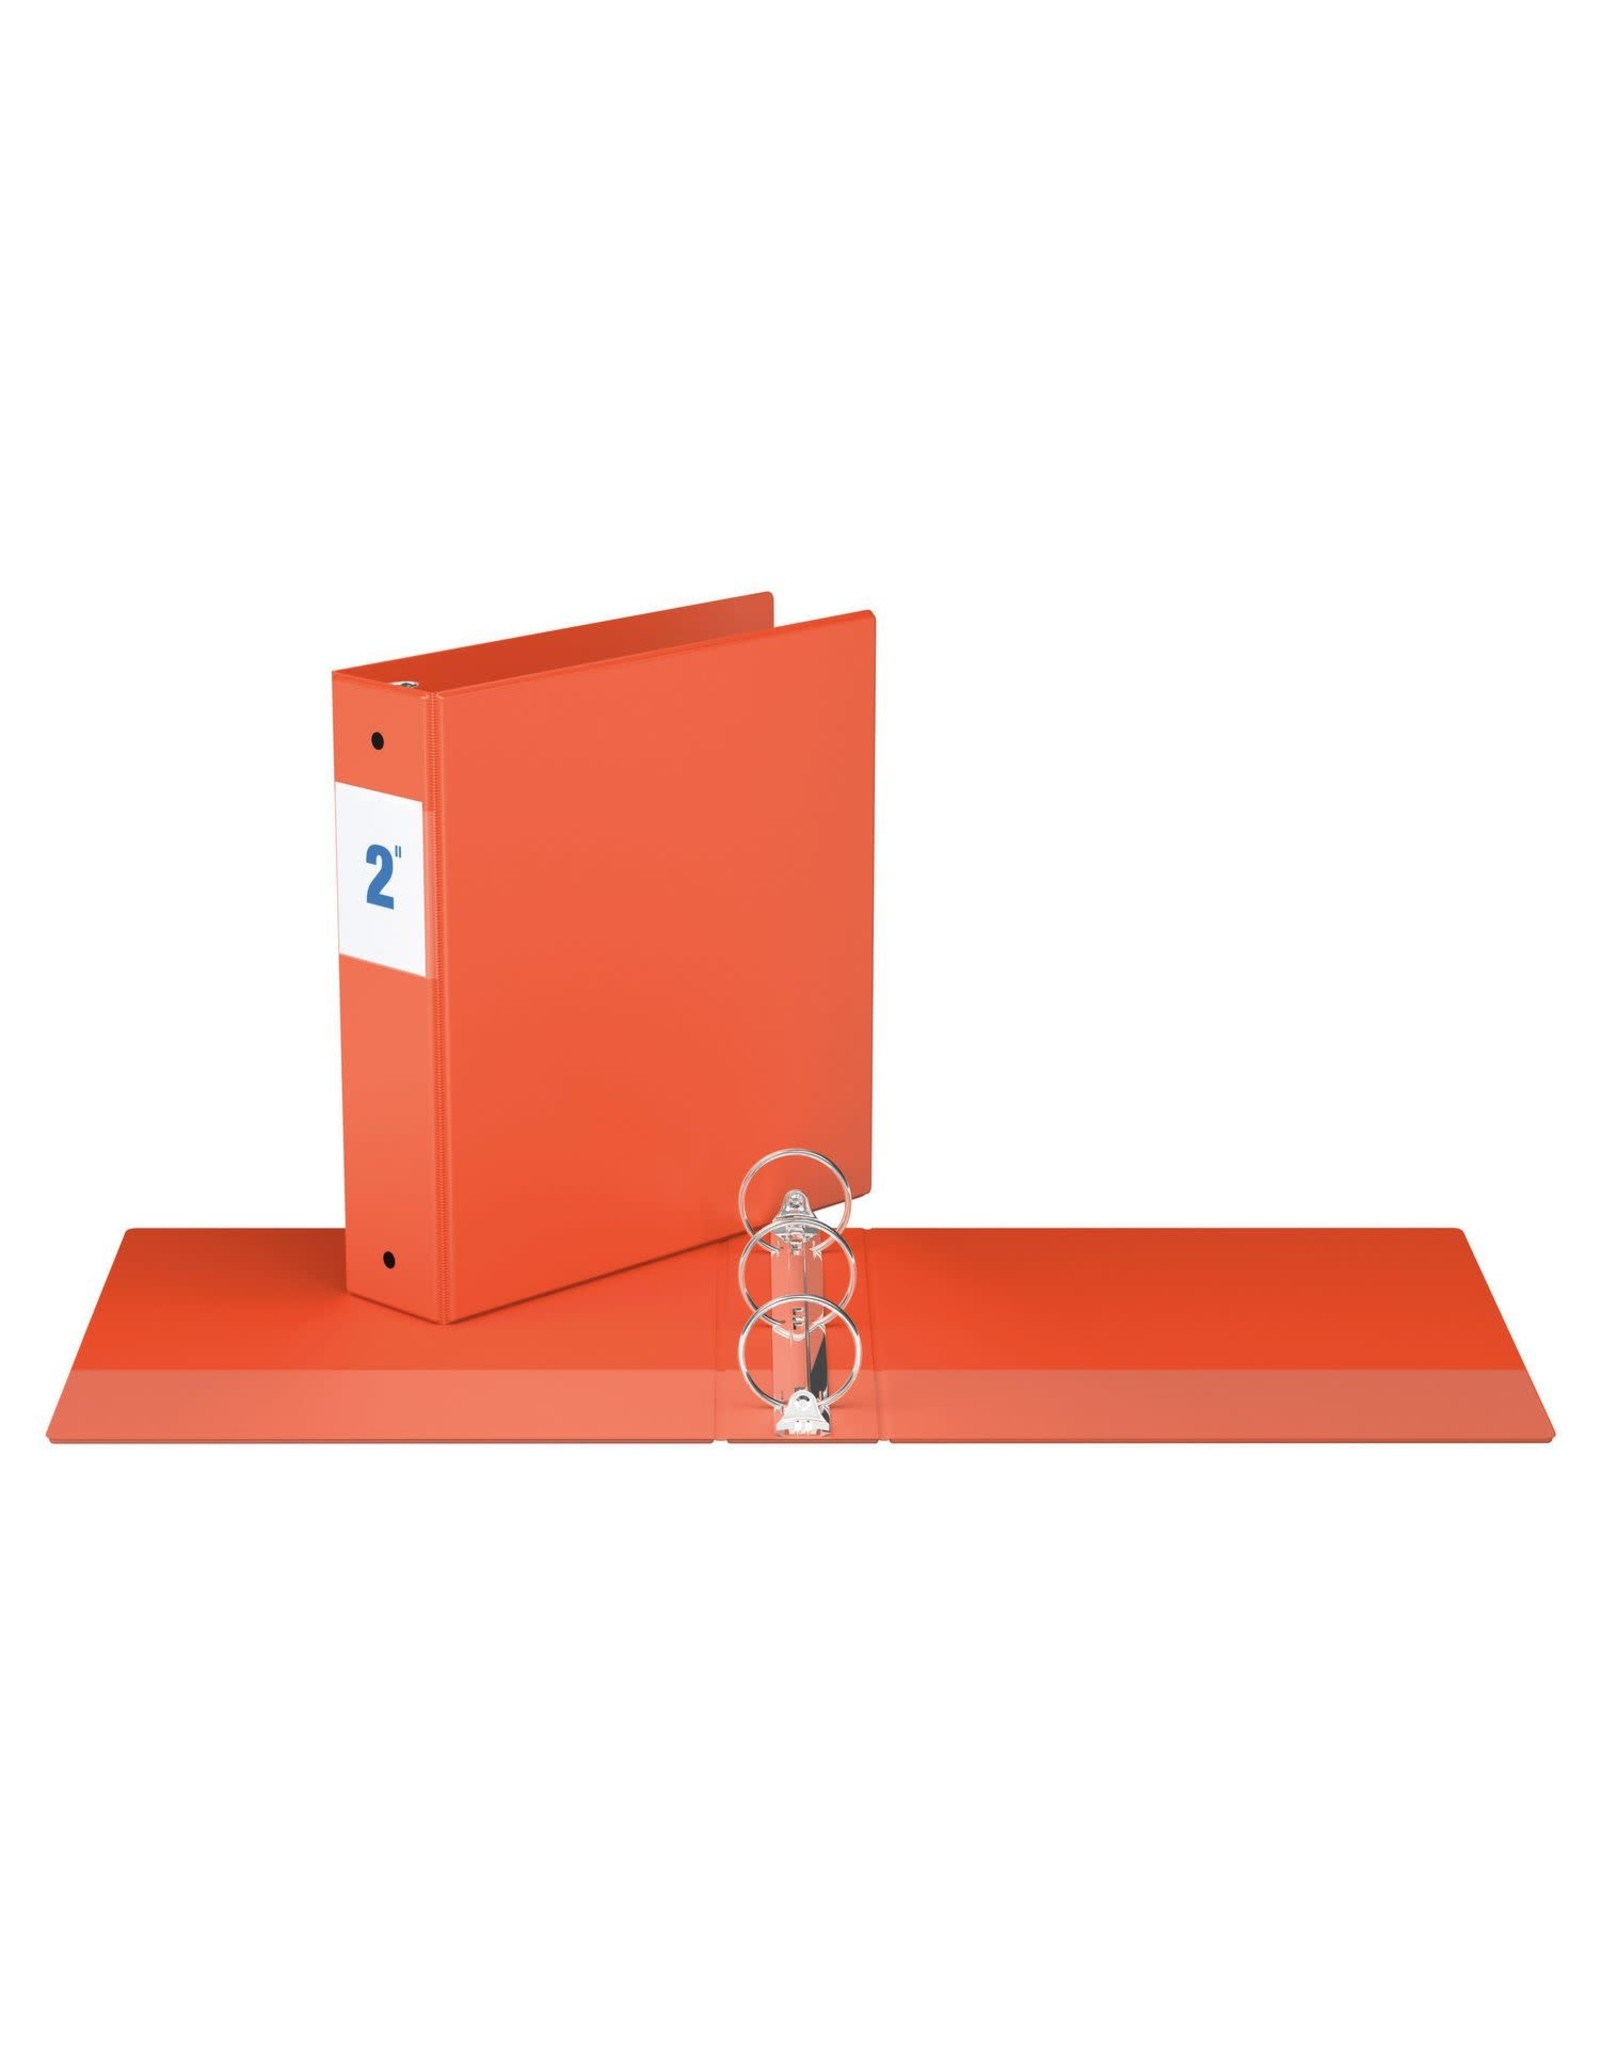 "Davis Group BINDER-ESSENTIAL 2300 2"" ROUND RING, ORANGE"